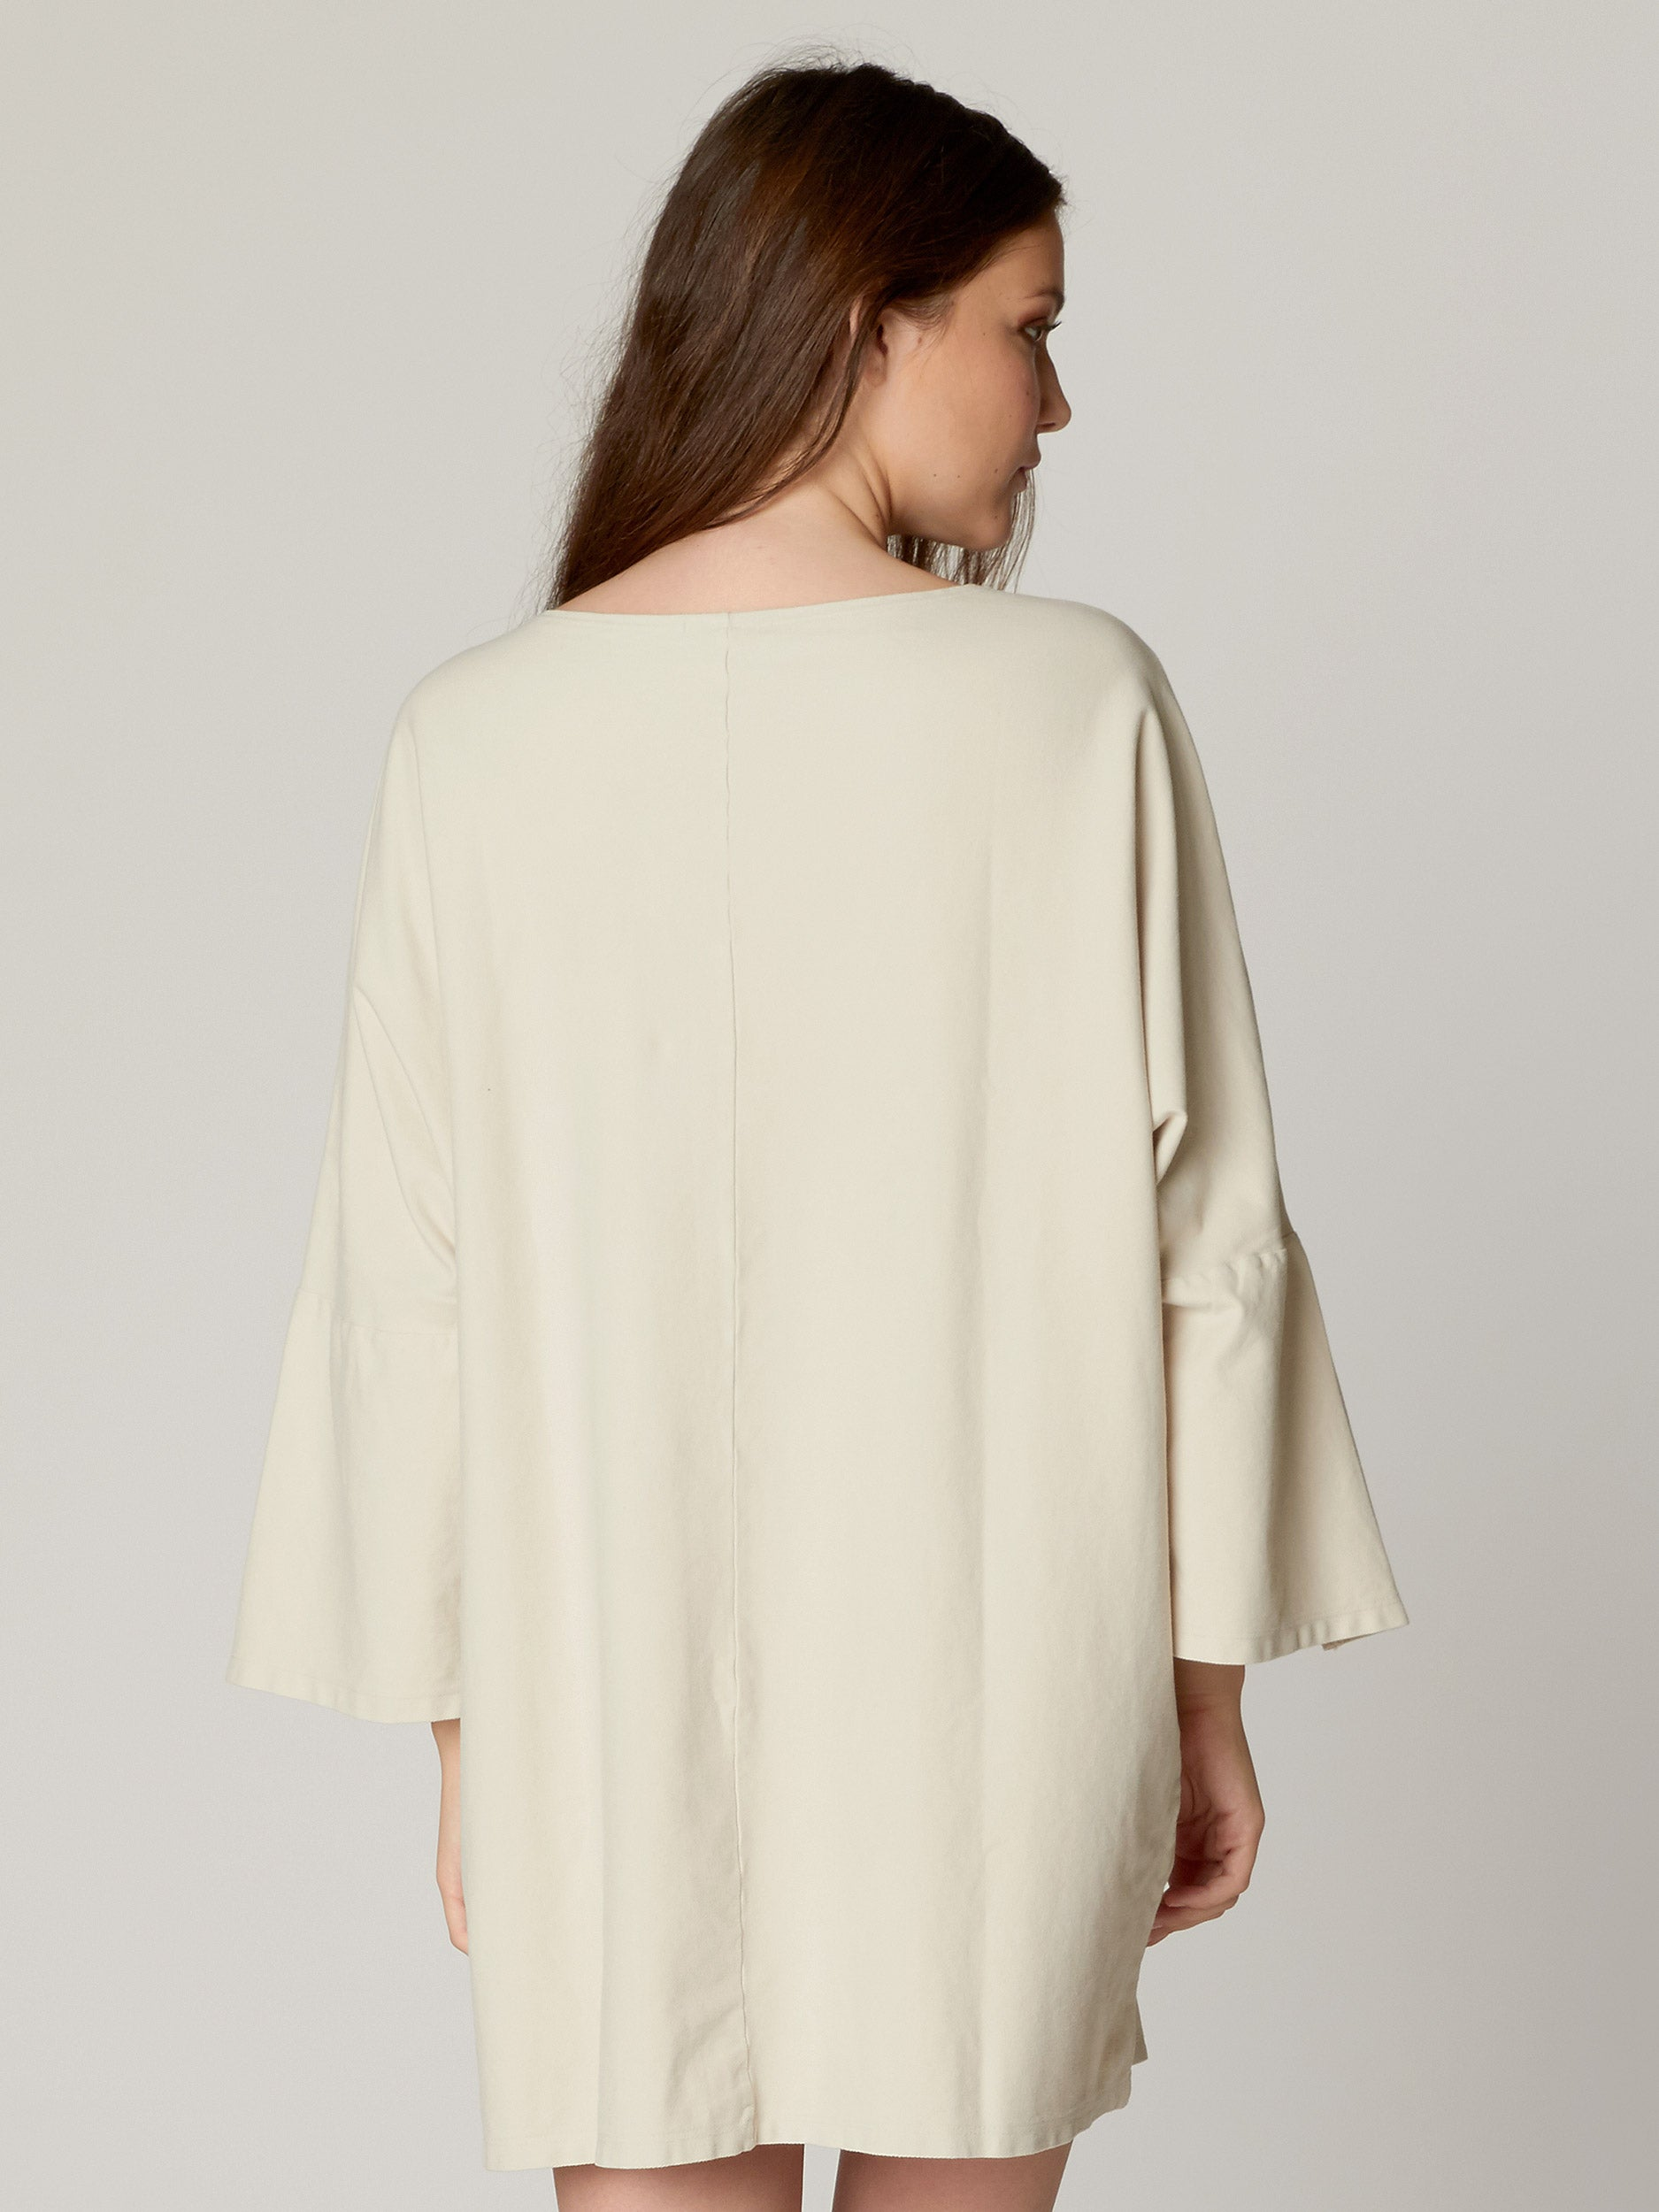 Midtown Tunic